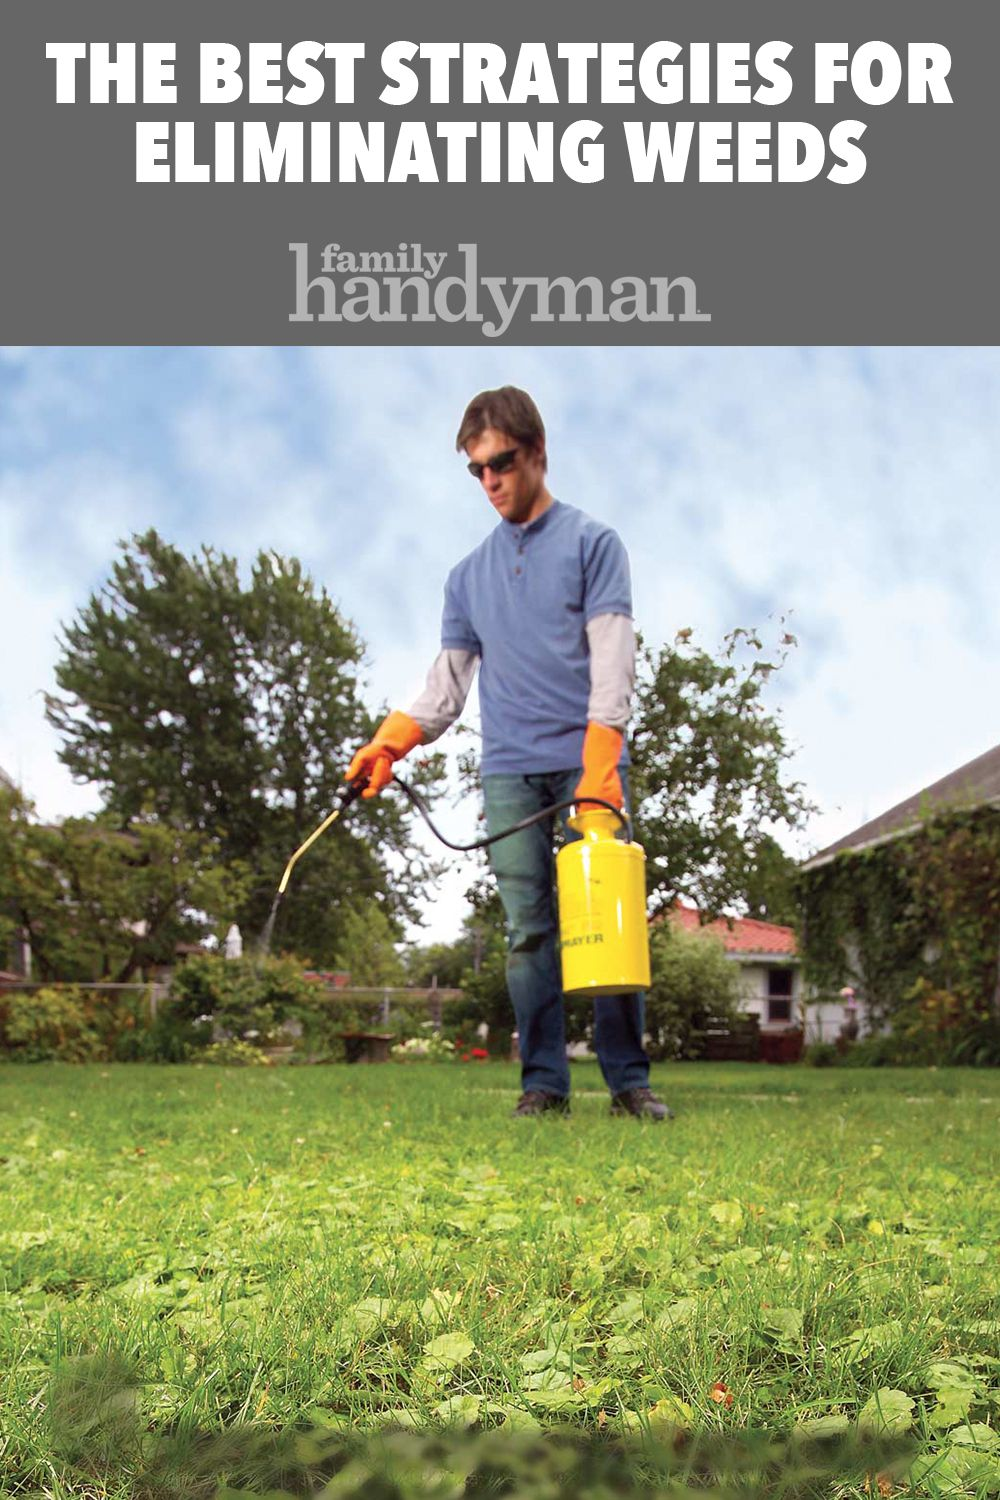 How To Eliminate Lawn Weeds Lawn Care Tips Landscaping Tips